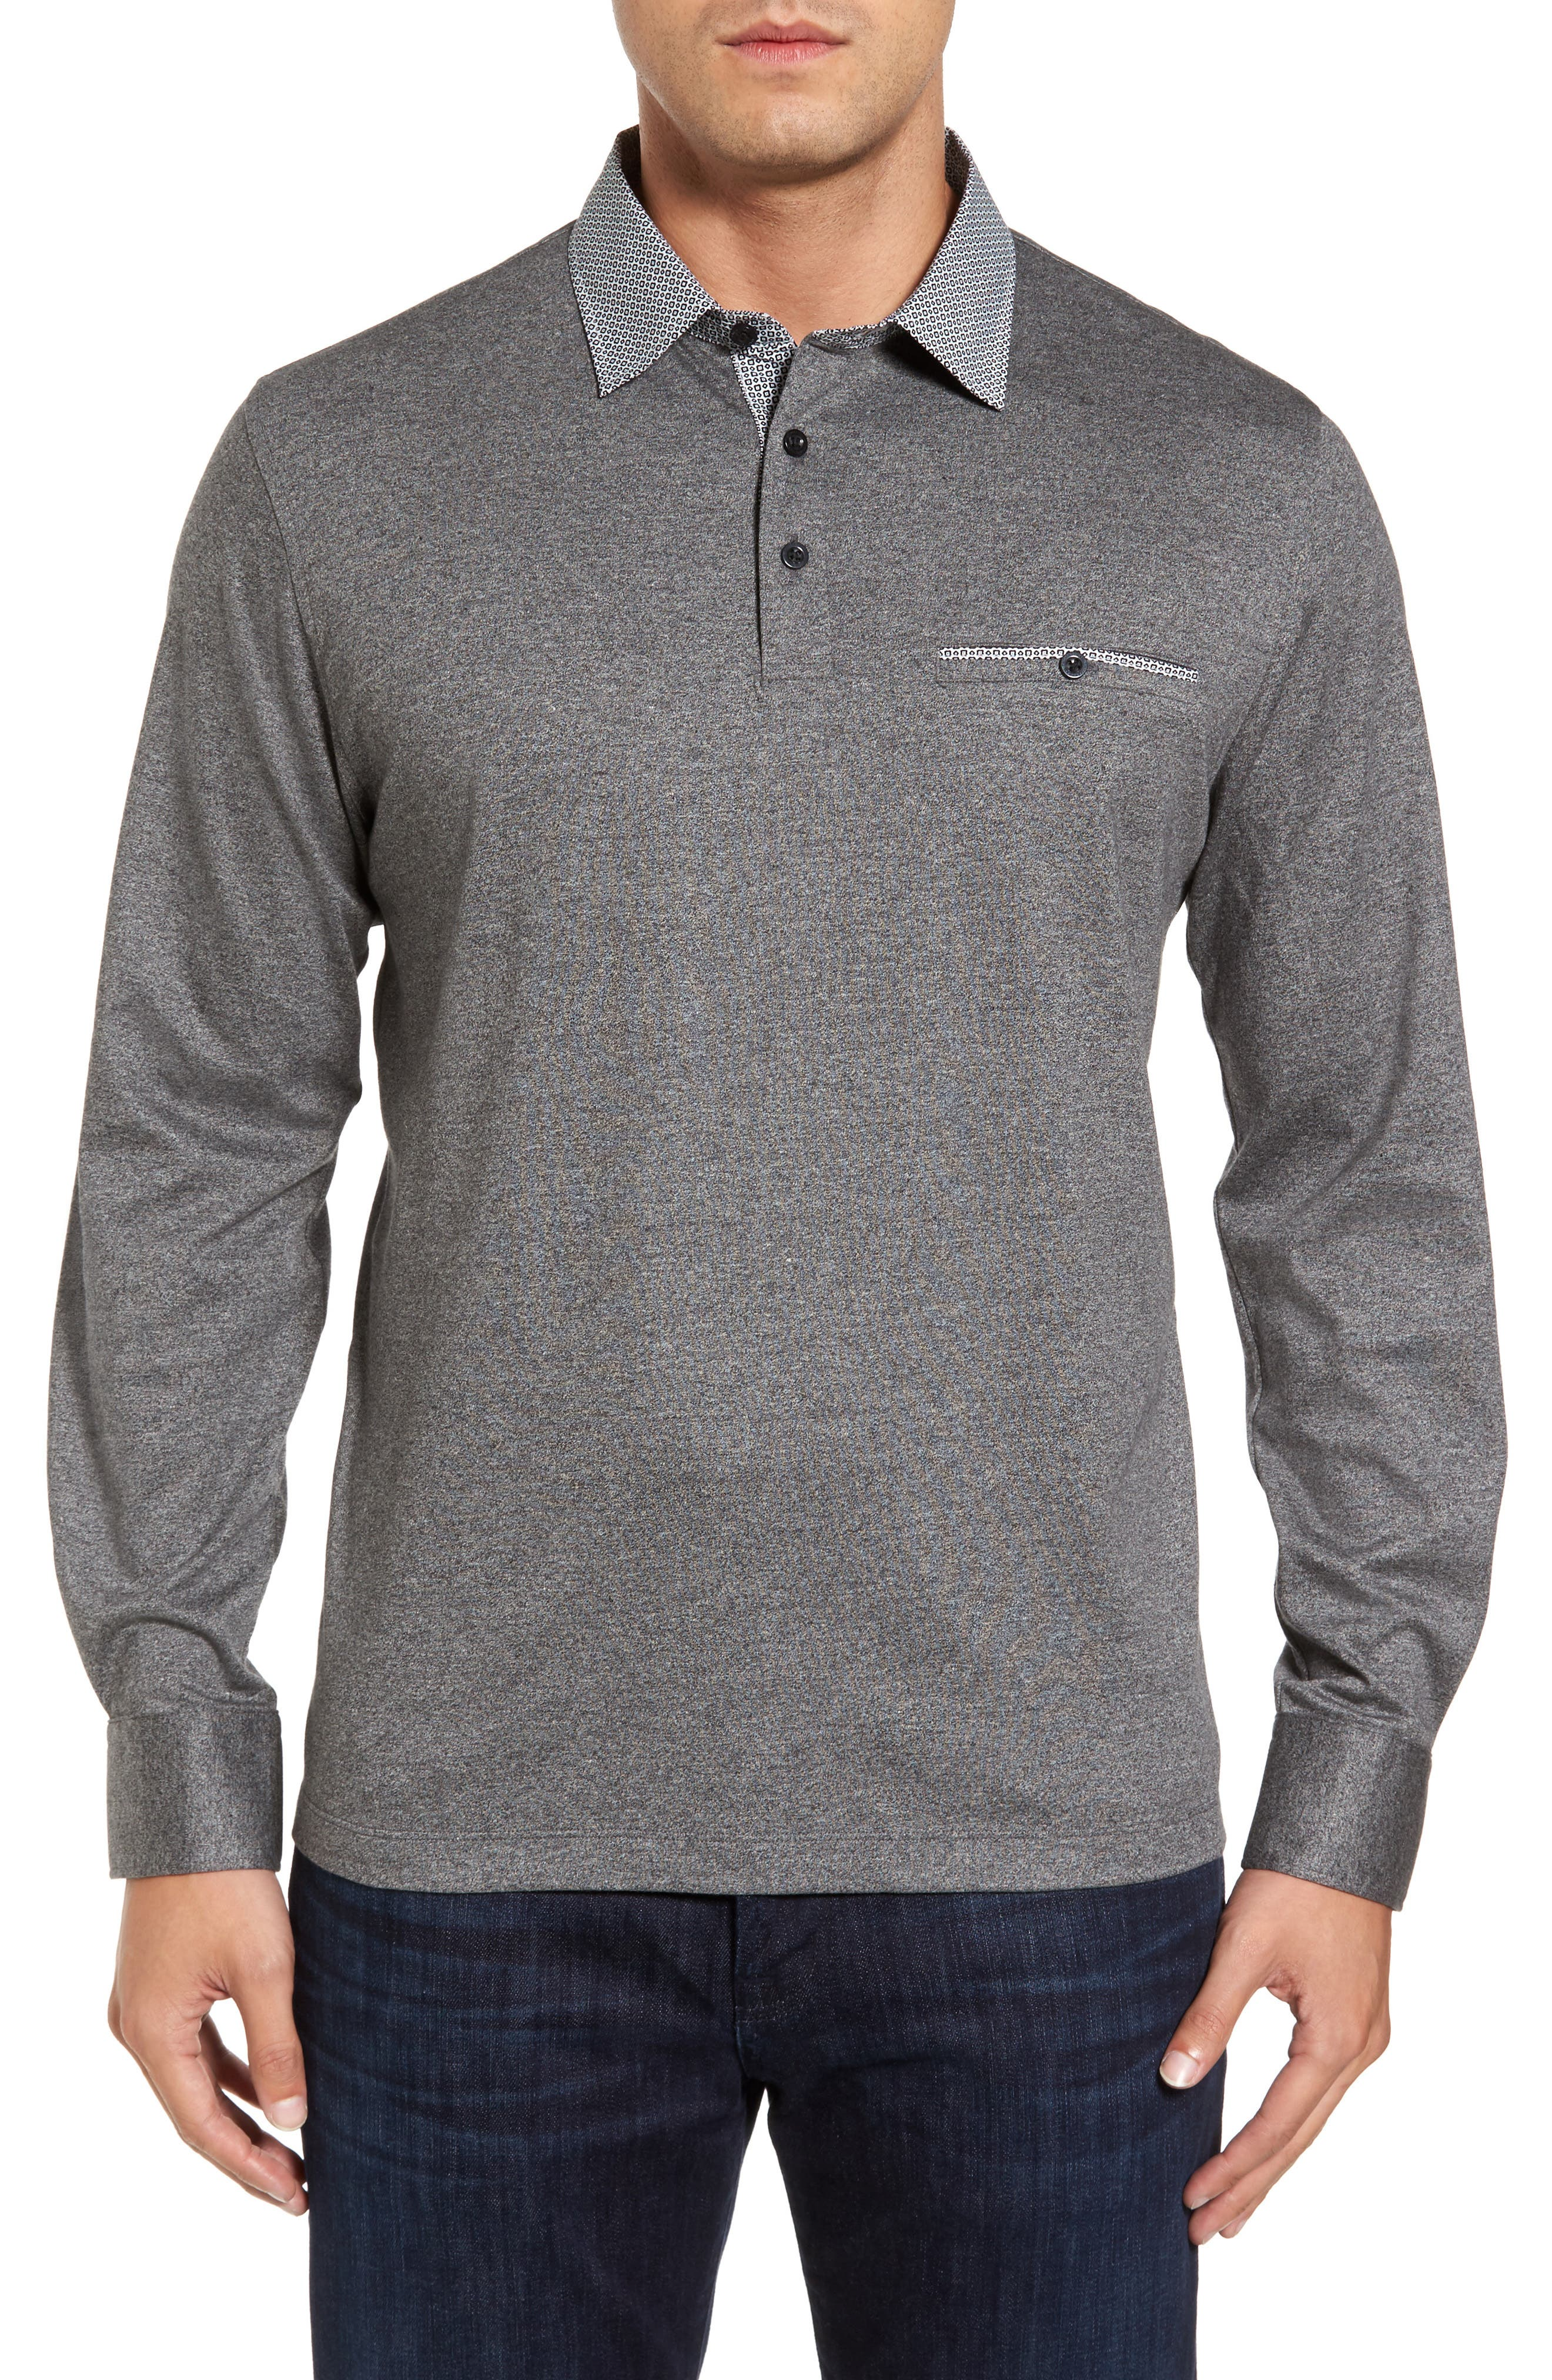 Alternate Image 1 Selected - Thomas Dean Long Sleeve Woven Trim Polo